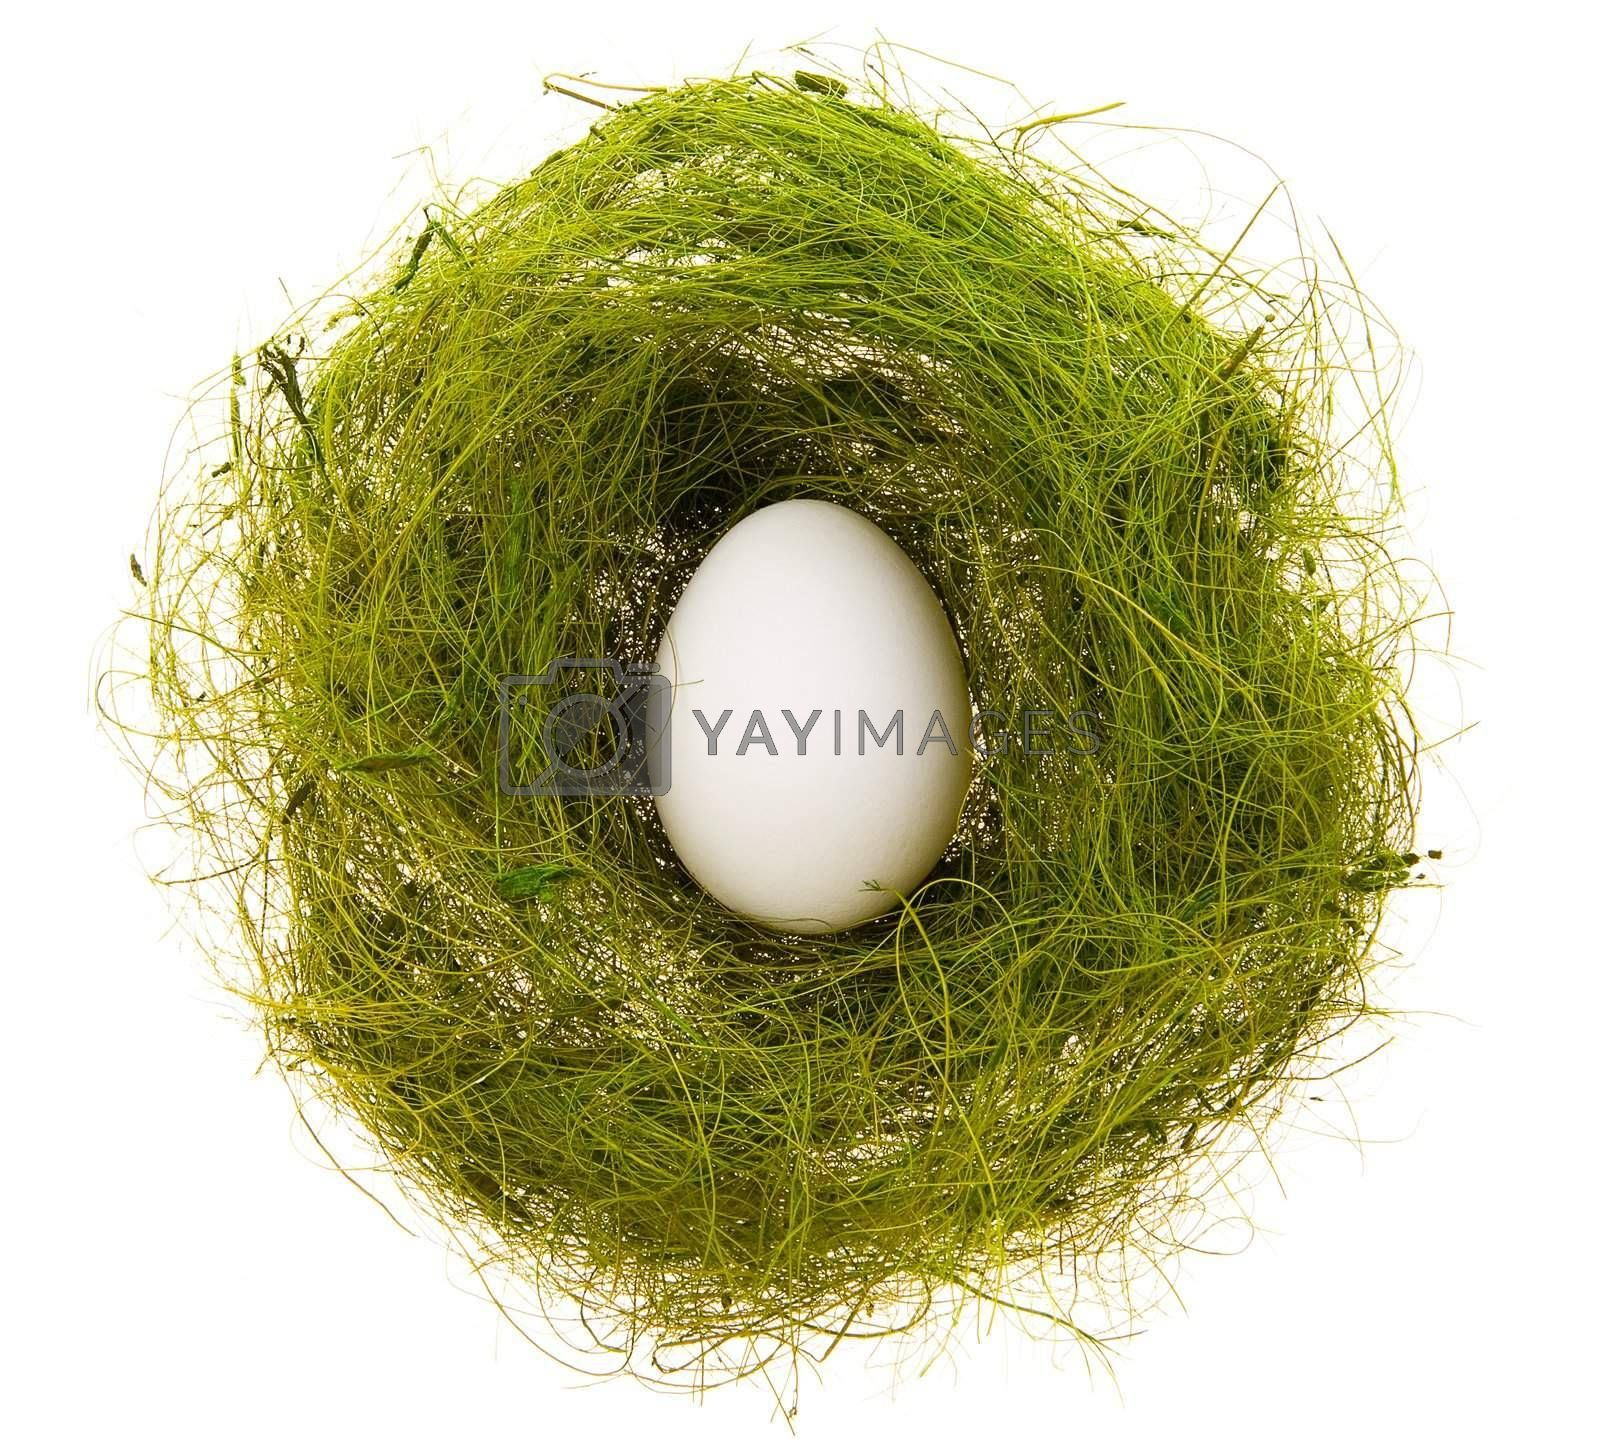 White egg in a small nest from a green grass on a white background